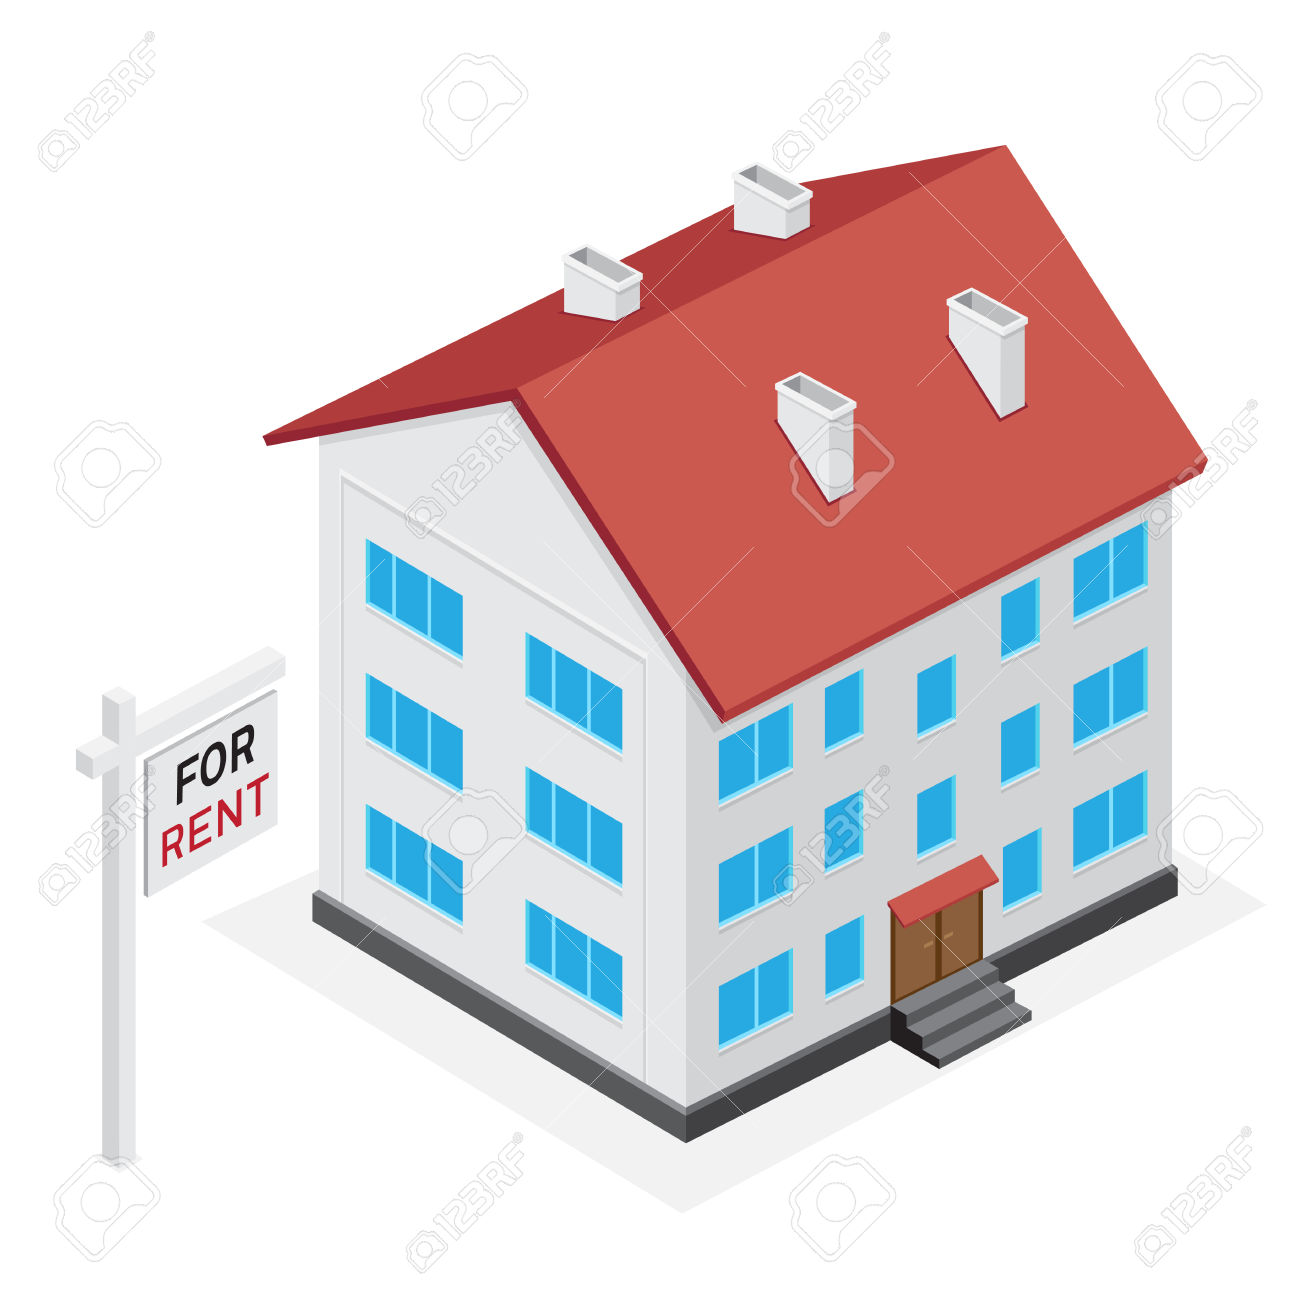 Simple Multistory House Icon. Home For Rent Or Sale On White.